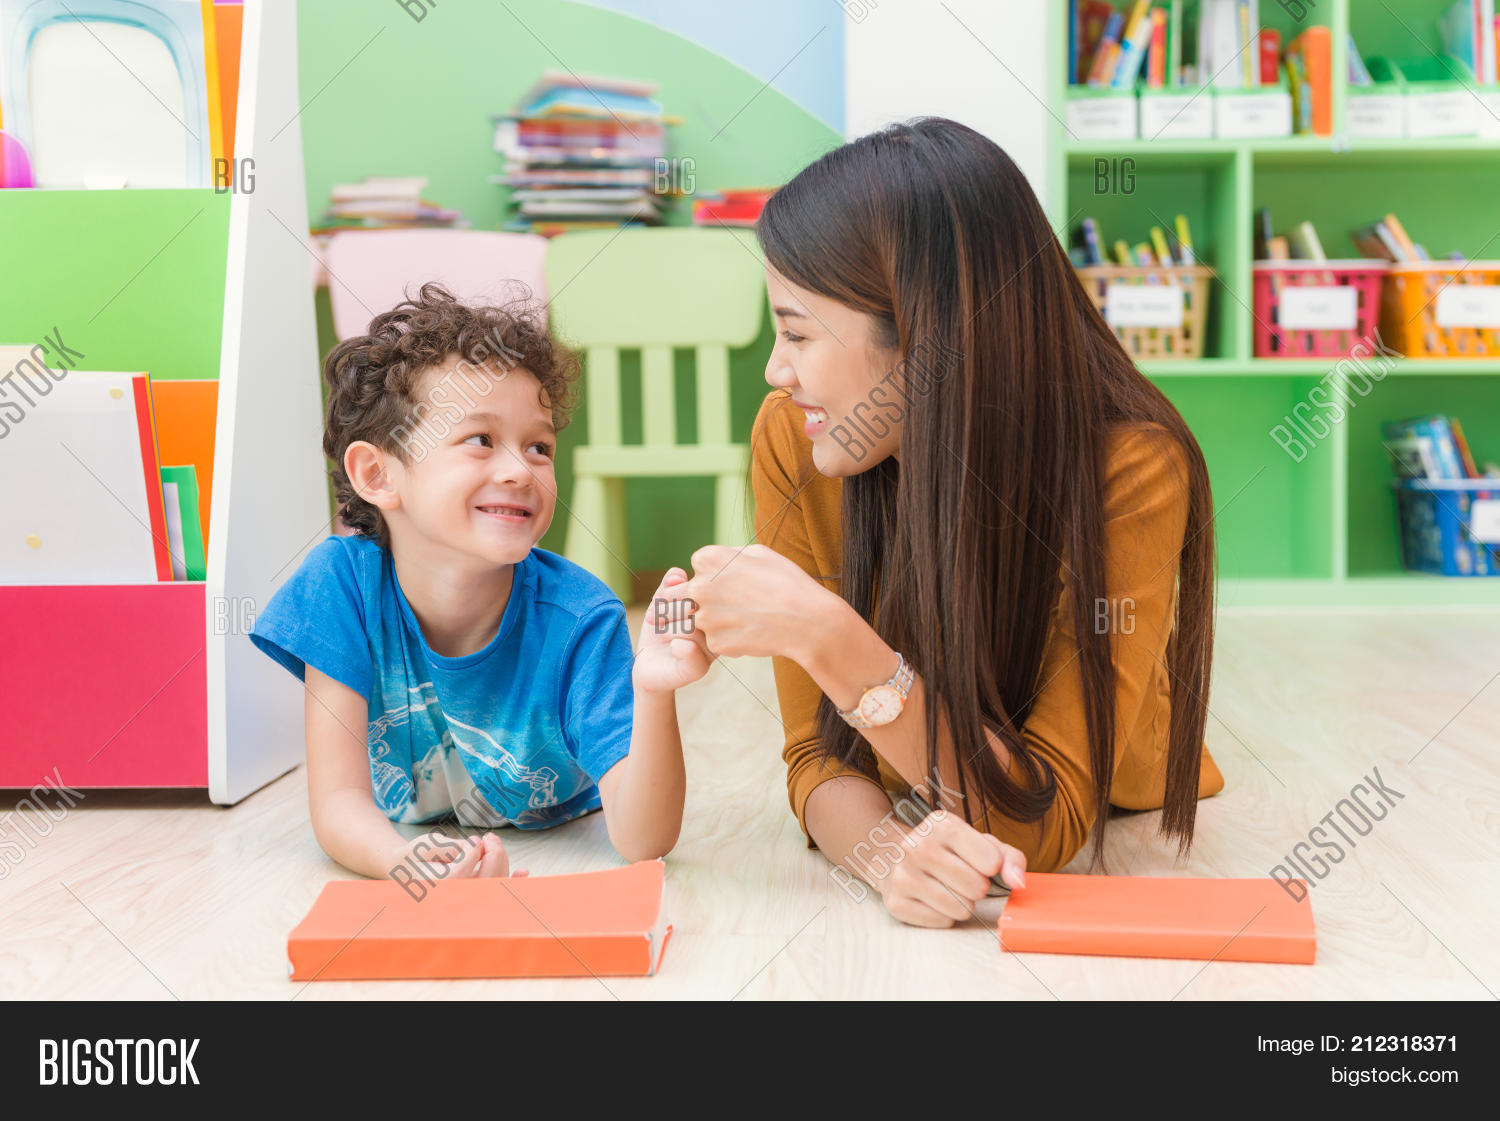 Young asian woman teacher teaching american kid in kindergarten classroom  with happiness and relaxation. Education